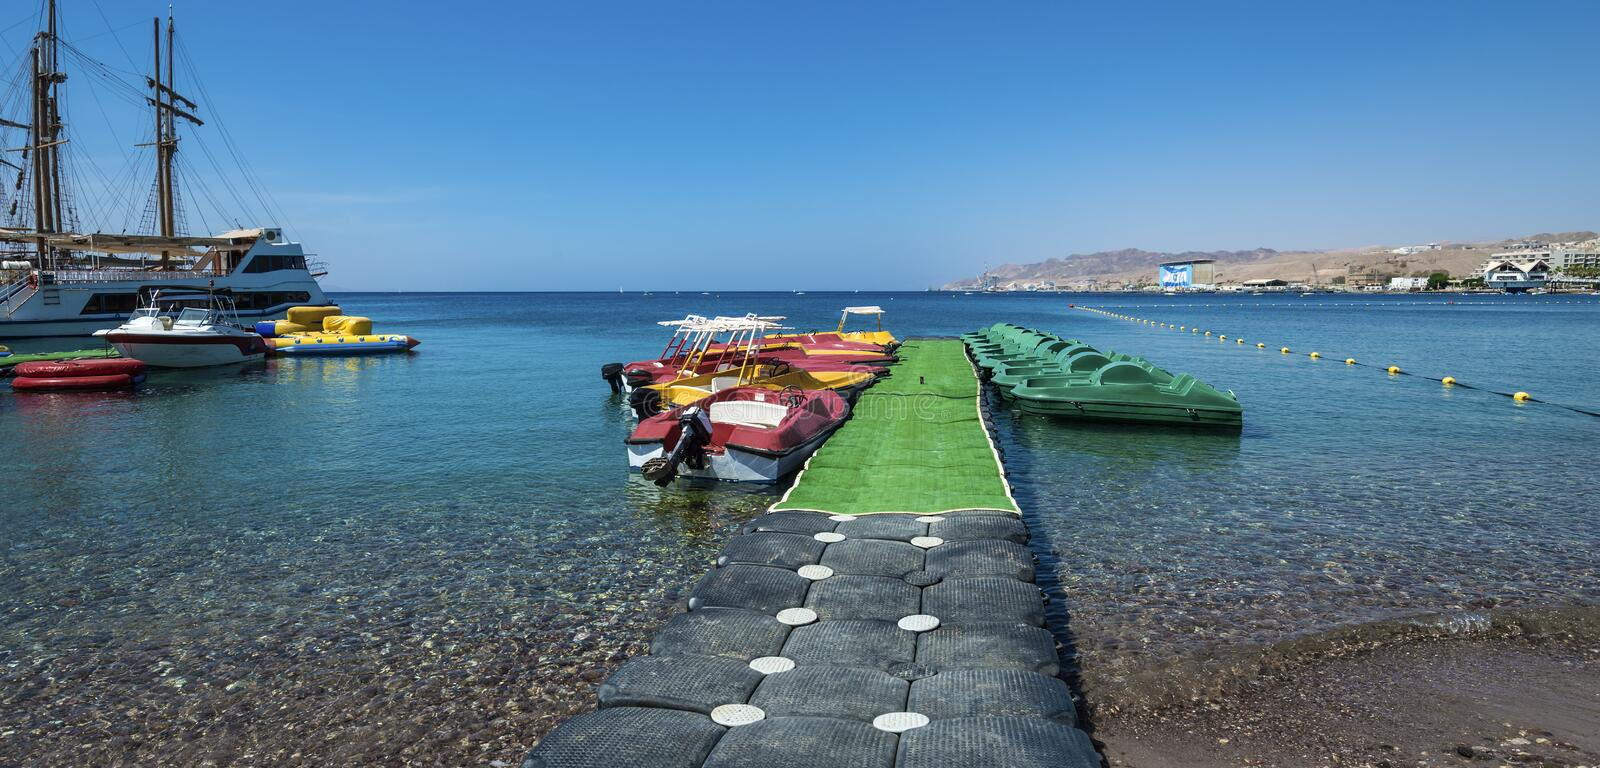 Pleasure boats in Eilat, Israel. Docked yachts and boats in the Red sea near central beach of Eilat royalty free stock photos